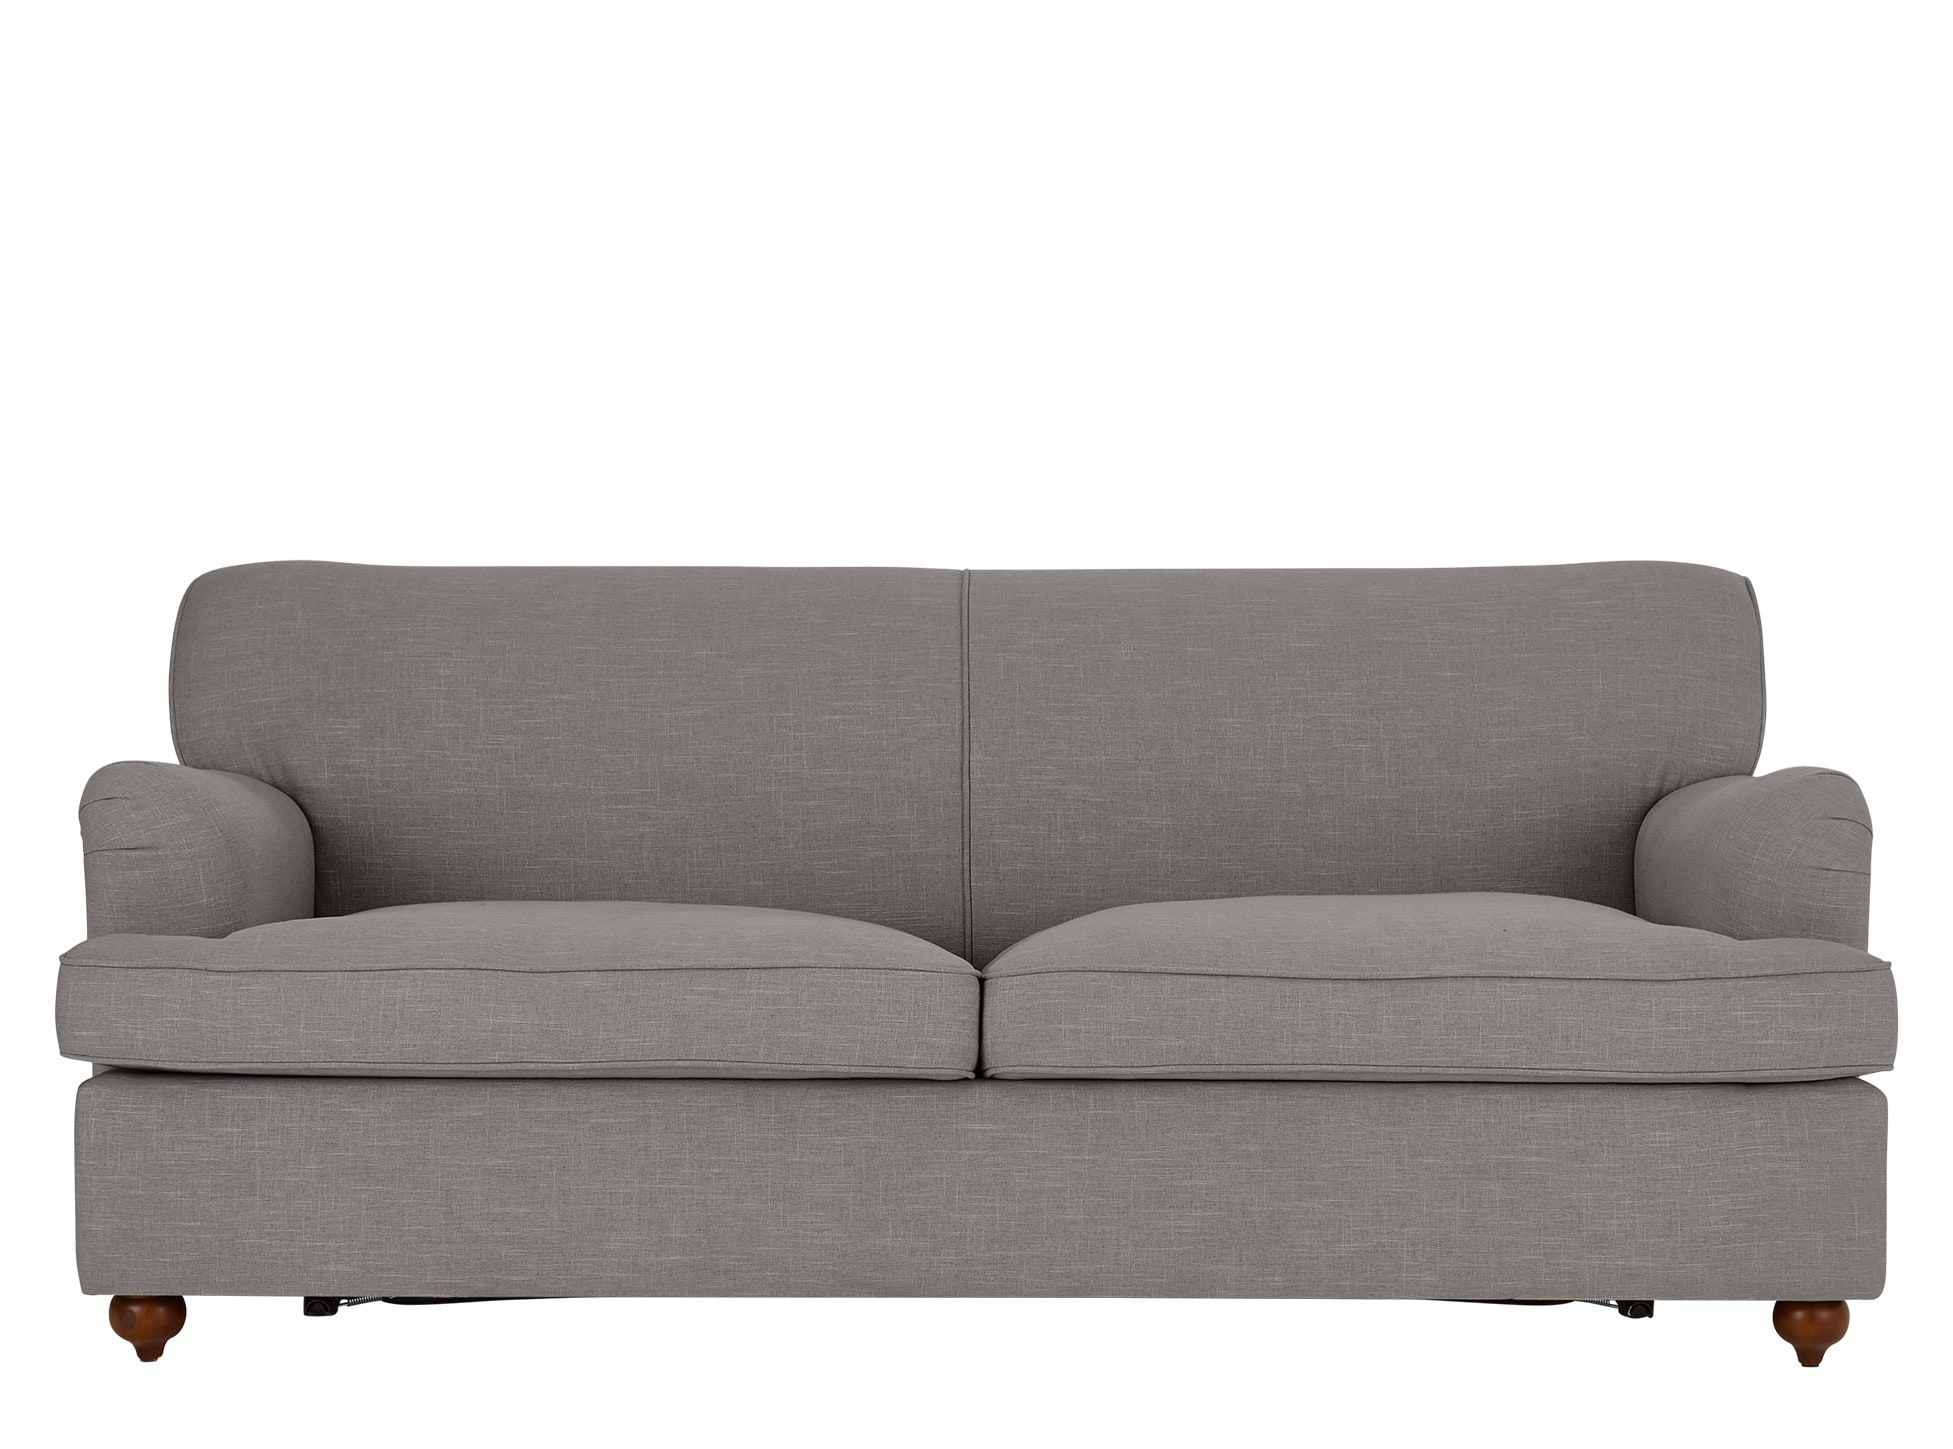 Orson 3 Seater Sofa Bed Graphite Grey 3 Seater Sofa Bed Seater Sofa Sofa Bed